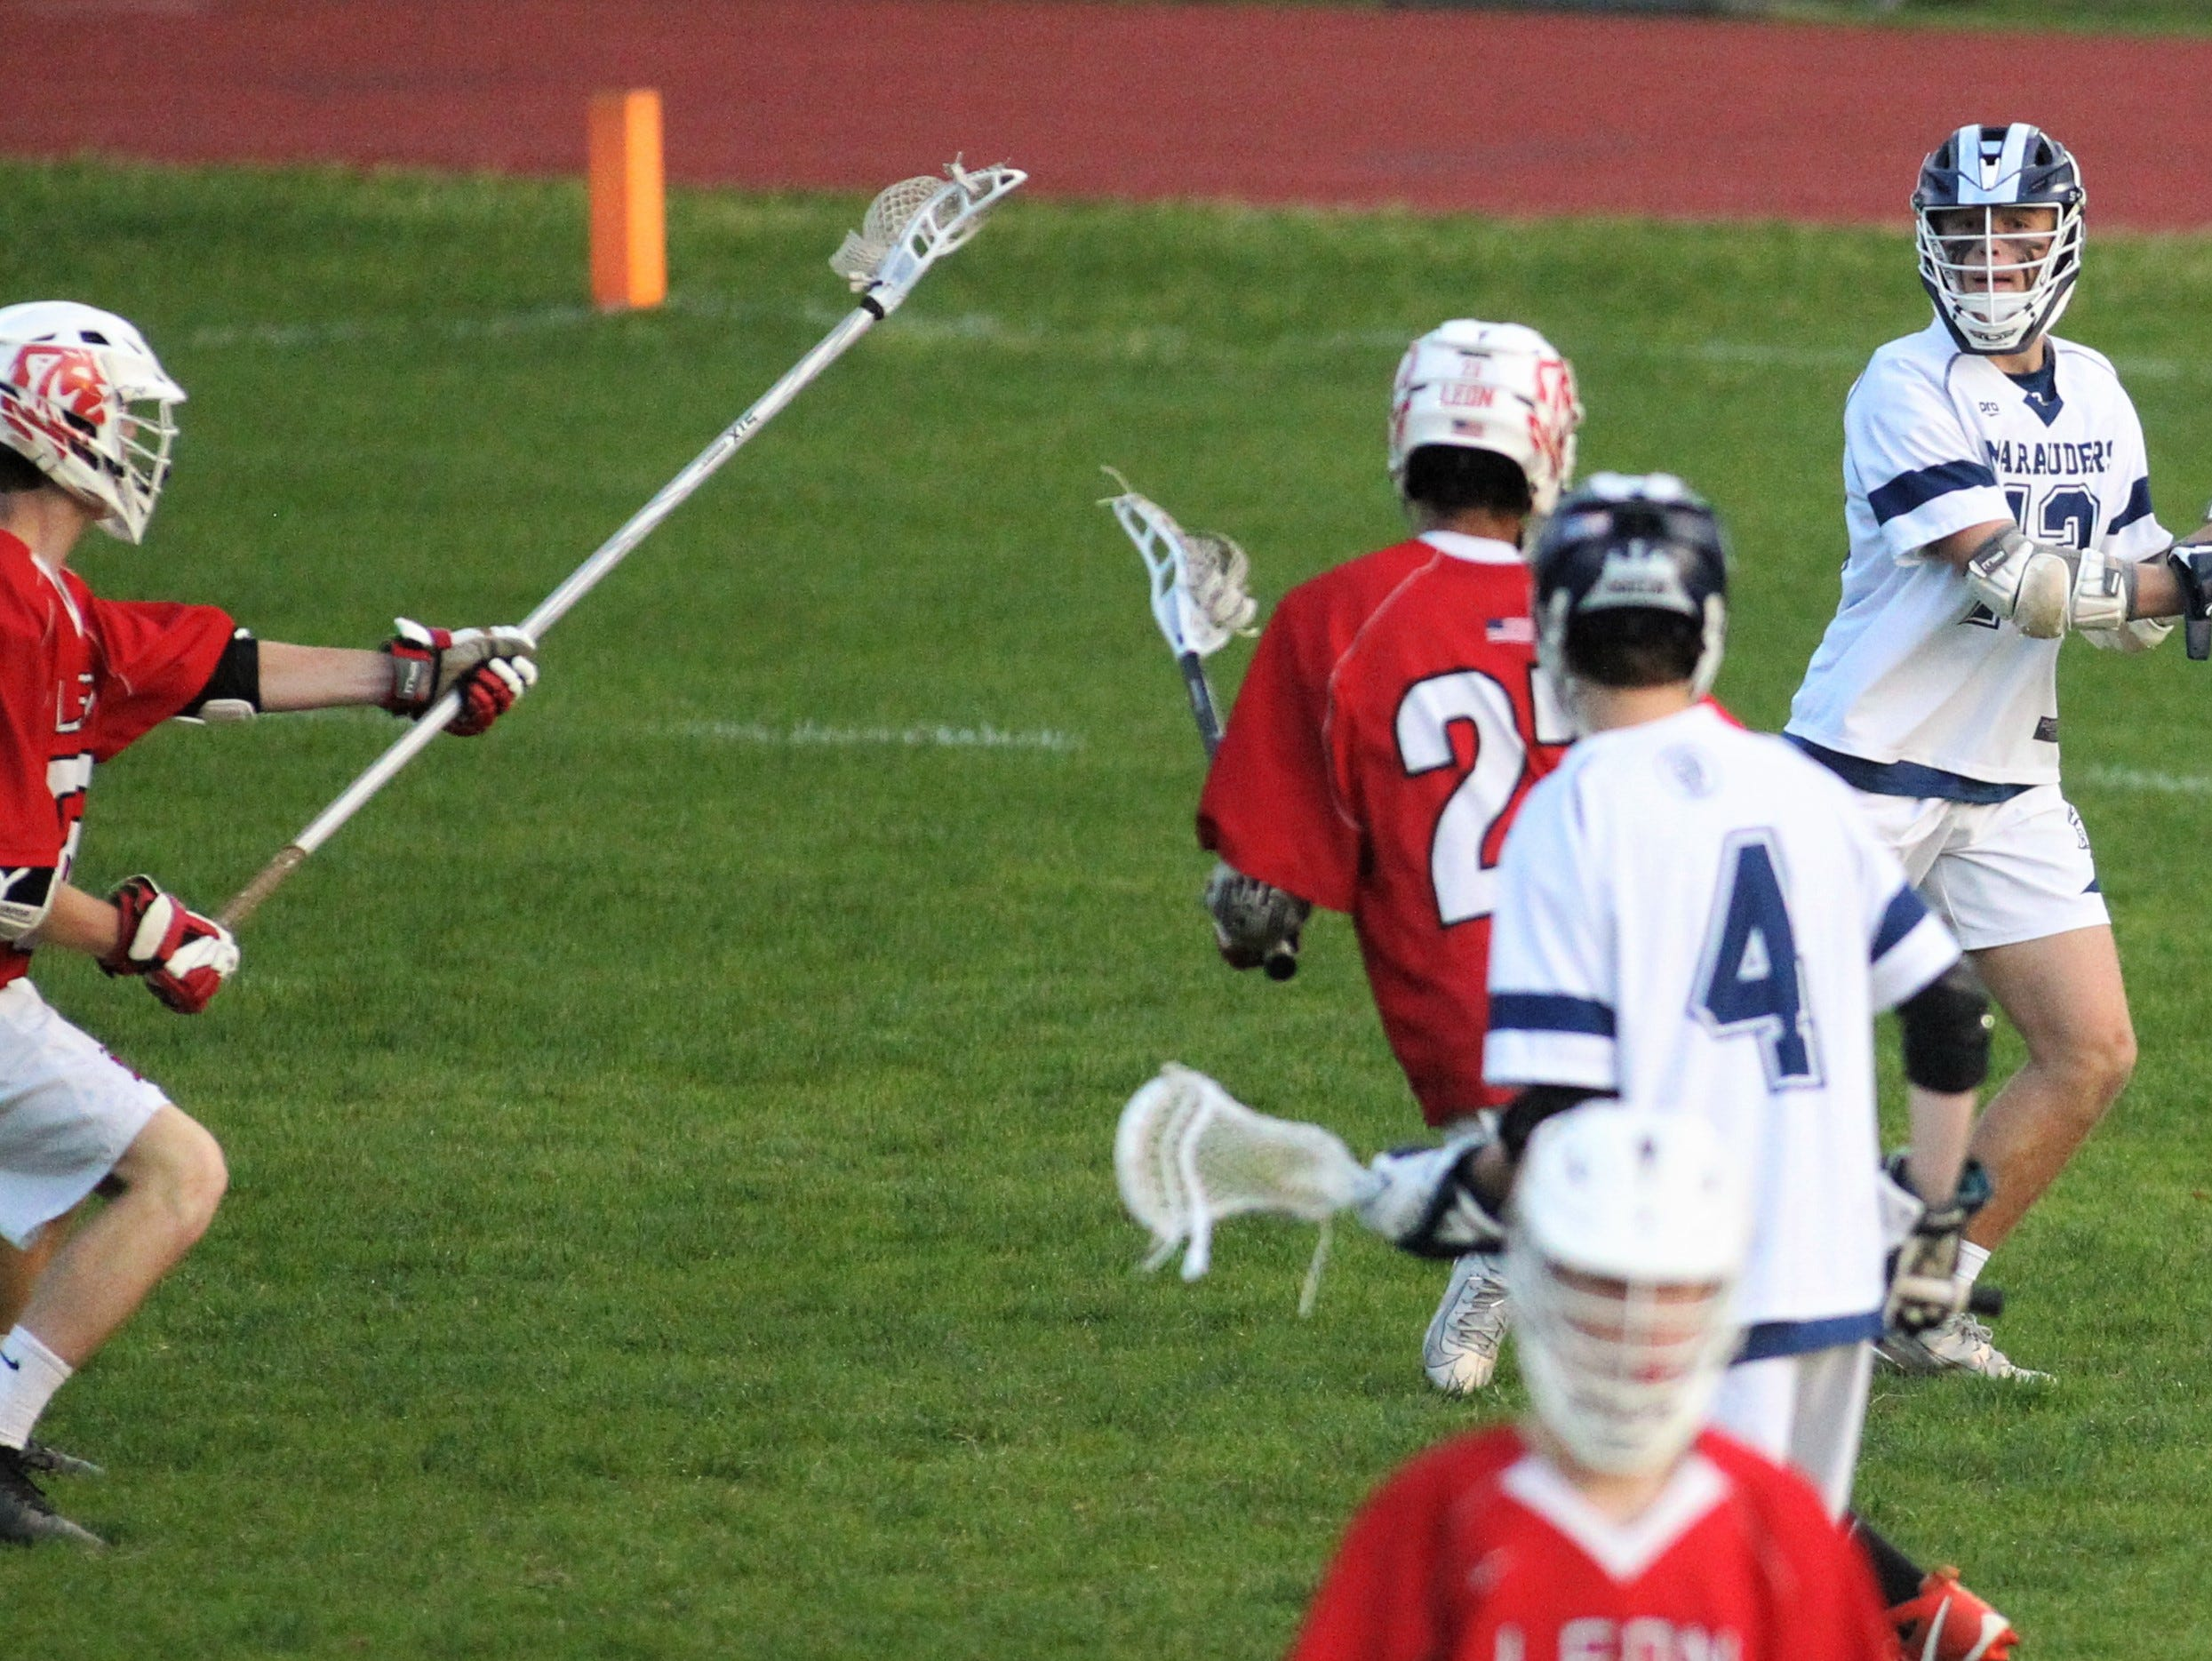 Maclay freshman Everett Thompson looks for a shot angle or a pass as the Marauders' lacrosse team beat Leon 15-5 on their annual Military Appreciation Night on March 12, 2019.